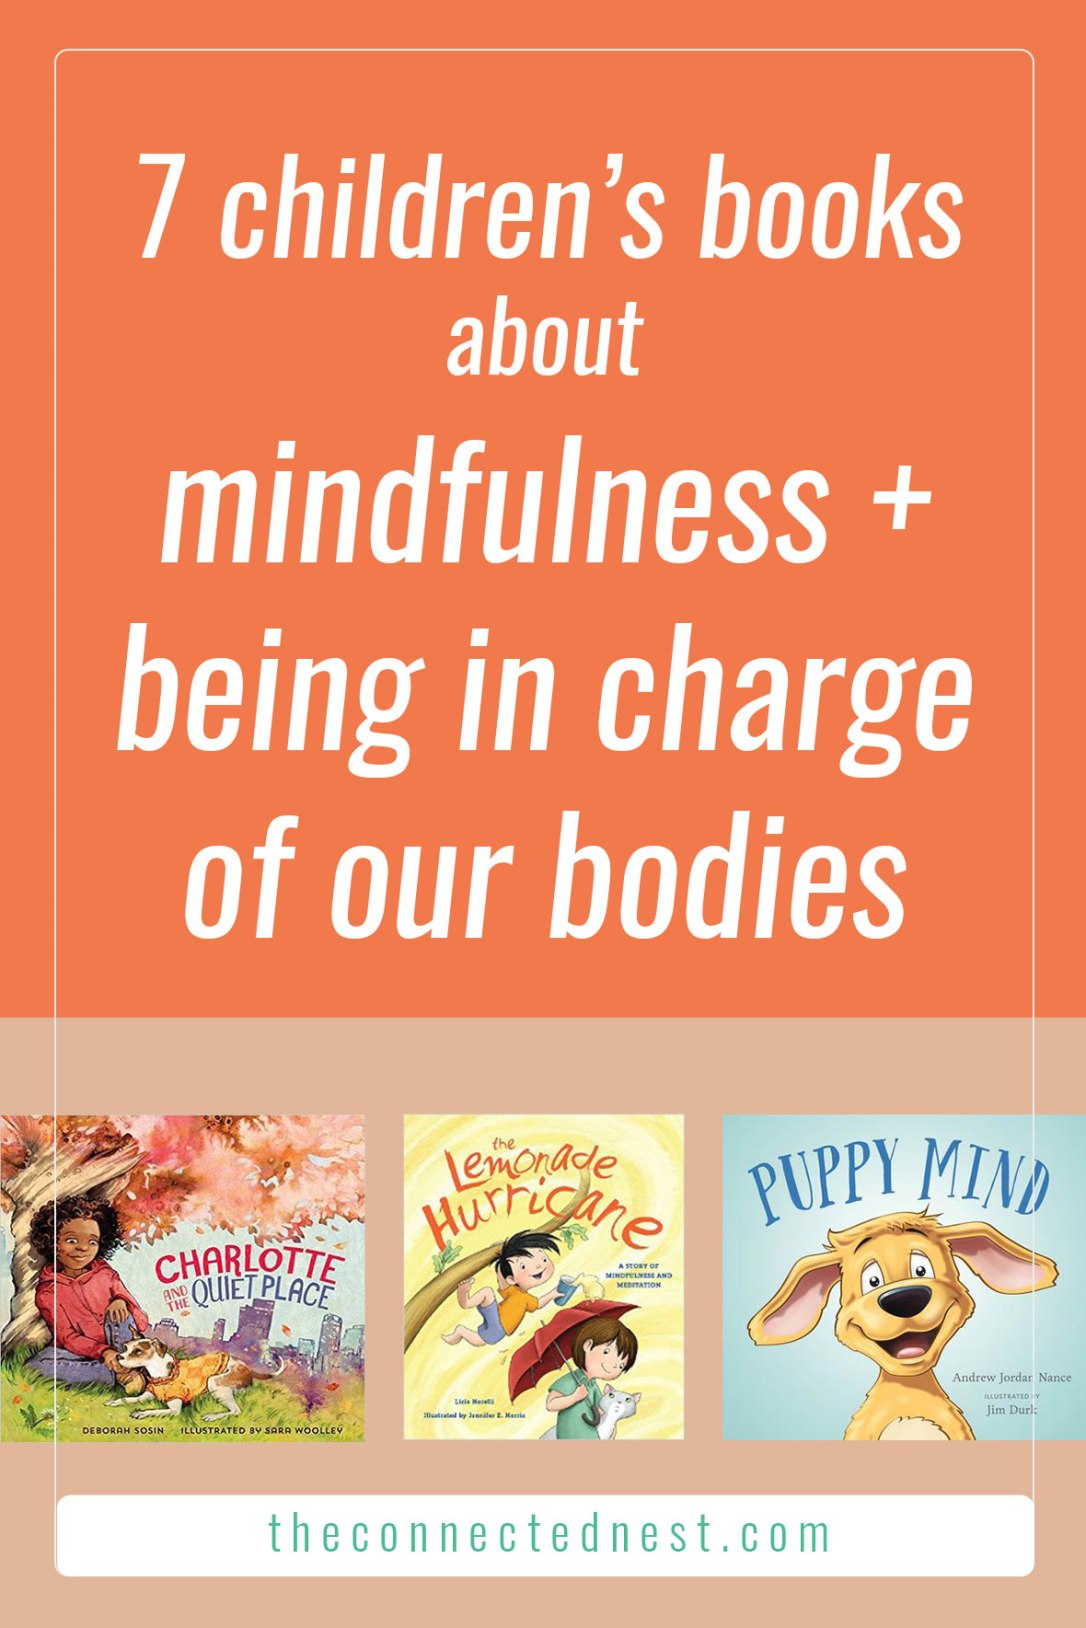 7 children's books about mindfulness and being in charge of our bodies